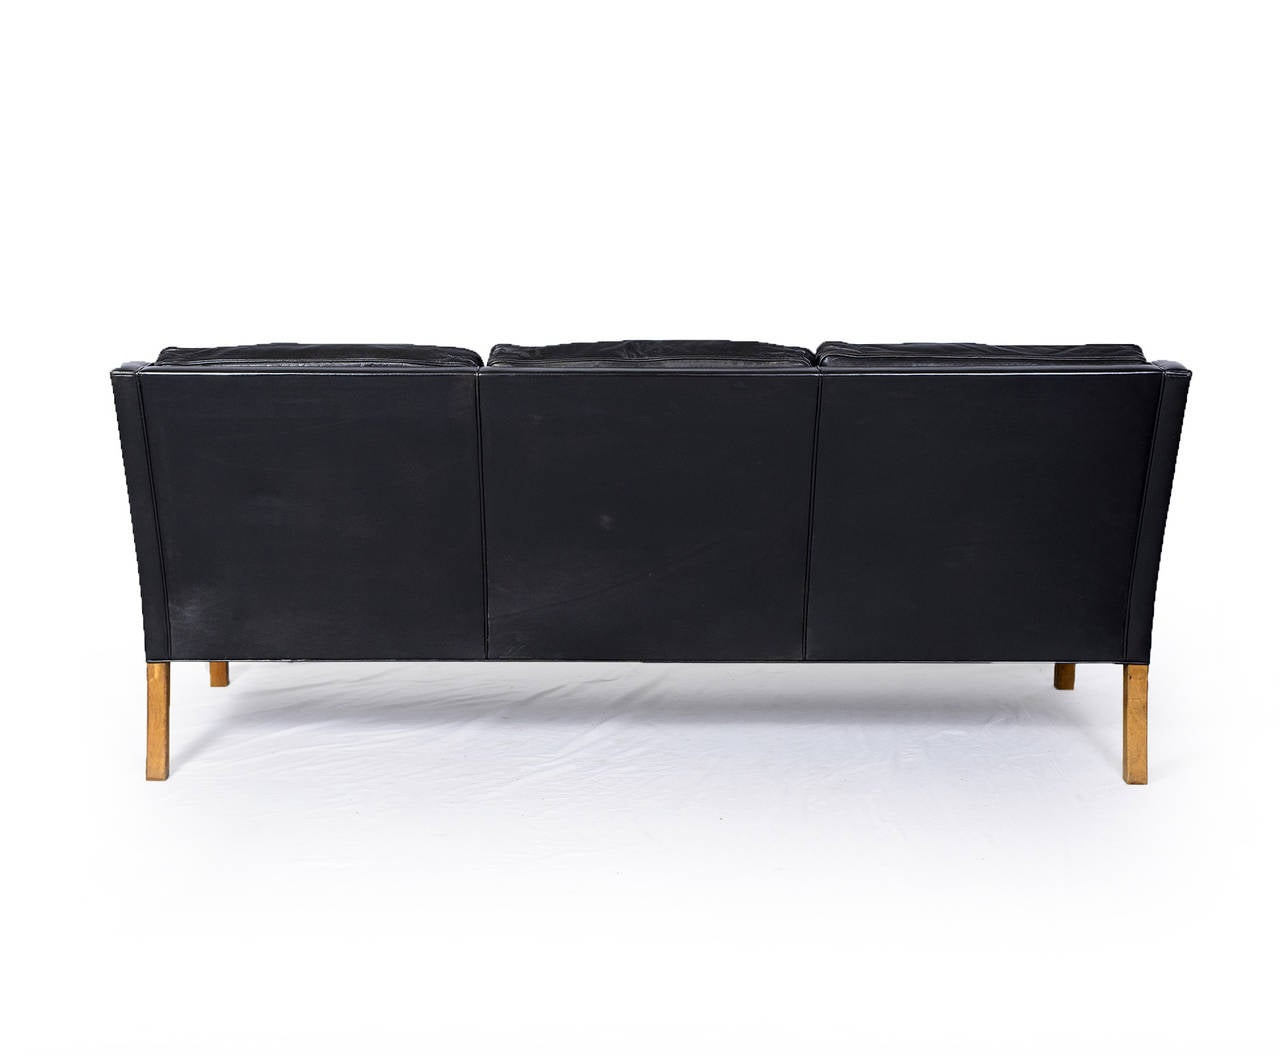 mogensen sofa 2209 luxury bed malaysia børge model three seat leather at 1stdibs